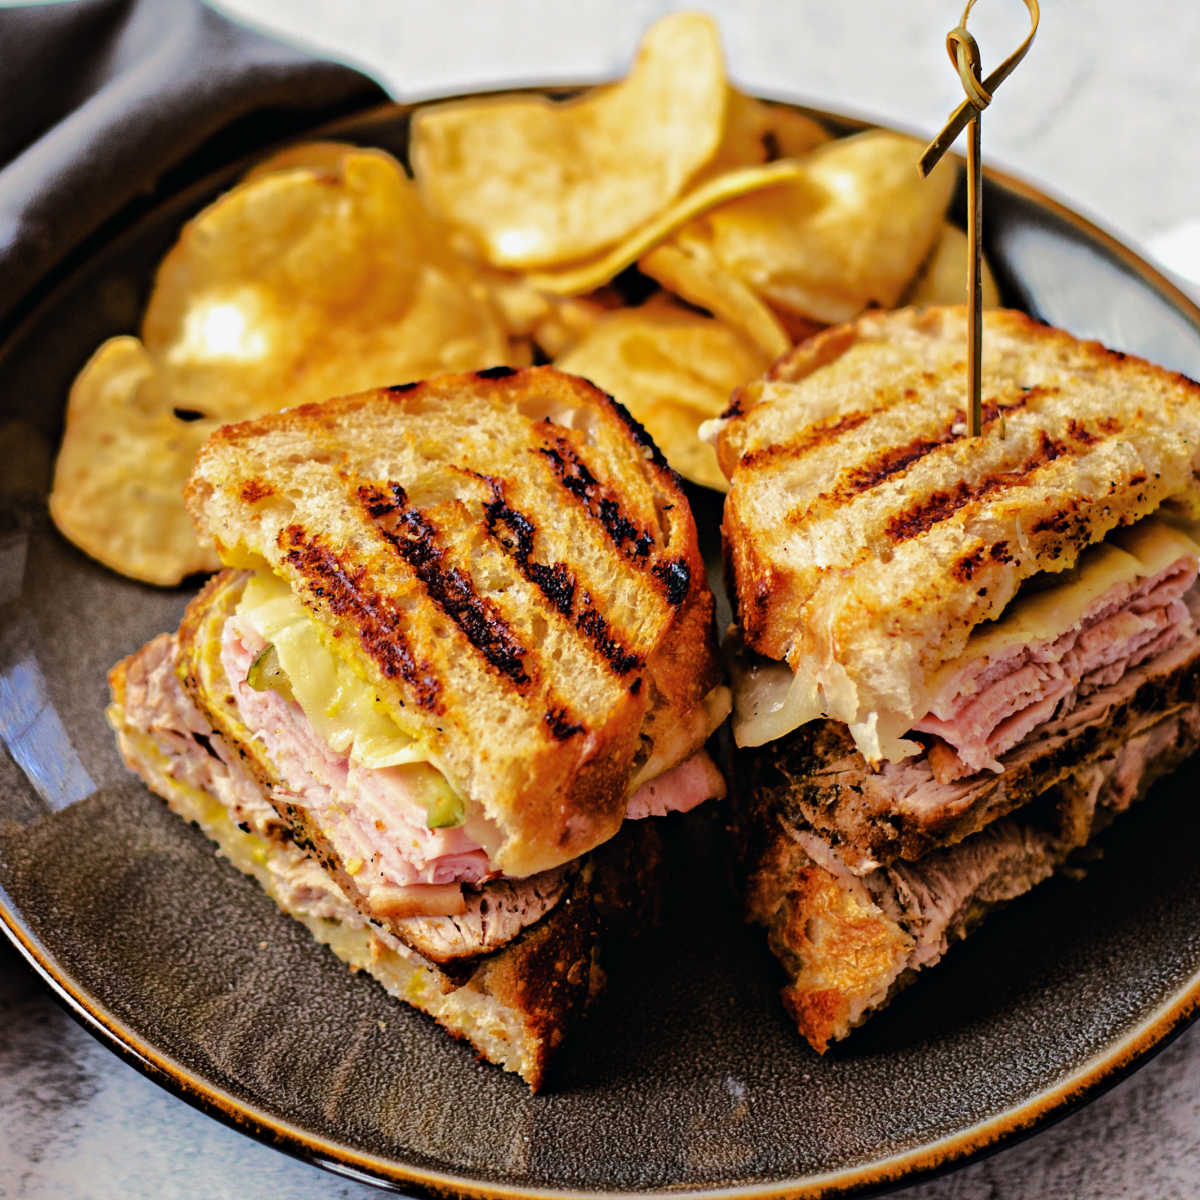 Sandwich Cubano on a gray plate with potato chips on the table.